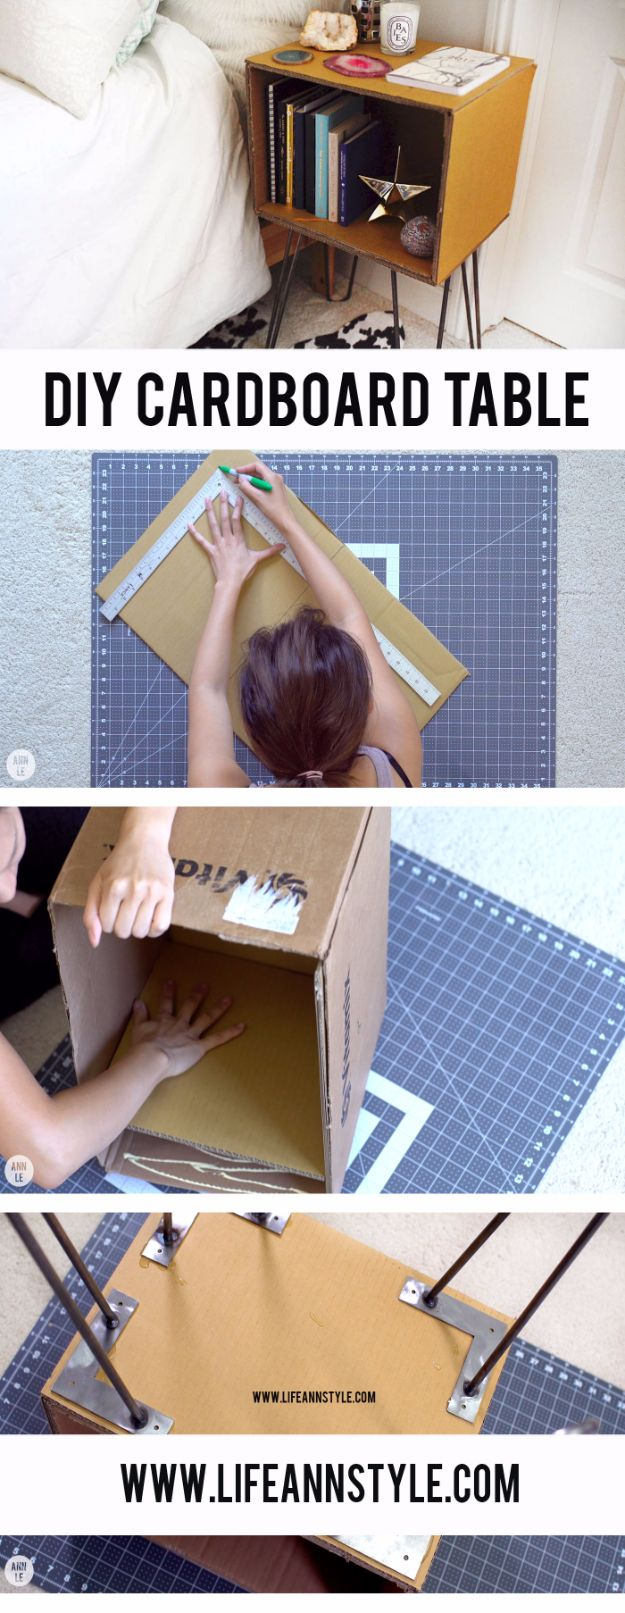 DIY Ideas With Cardboard - DIY Cardboard Table - How To Make Room Decor Crafts for Kids - Easy and Crafty Storage Ideas For Room - Toilet Paper Roll Projects Tutorials - Fun Furniture Ideas with Cardboard - Cheap, Quick and Easy Wall Decorations http://diyjoy.com/diy-ideas-cardboard